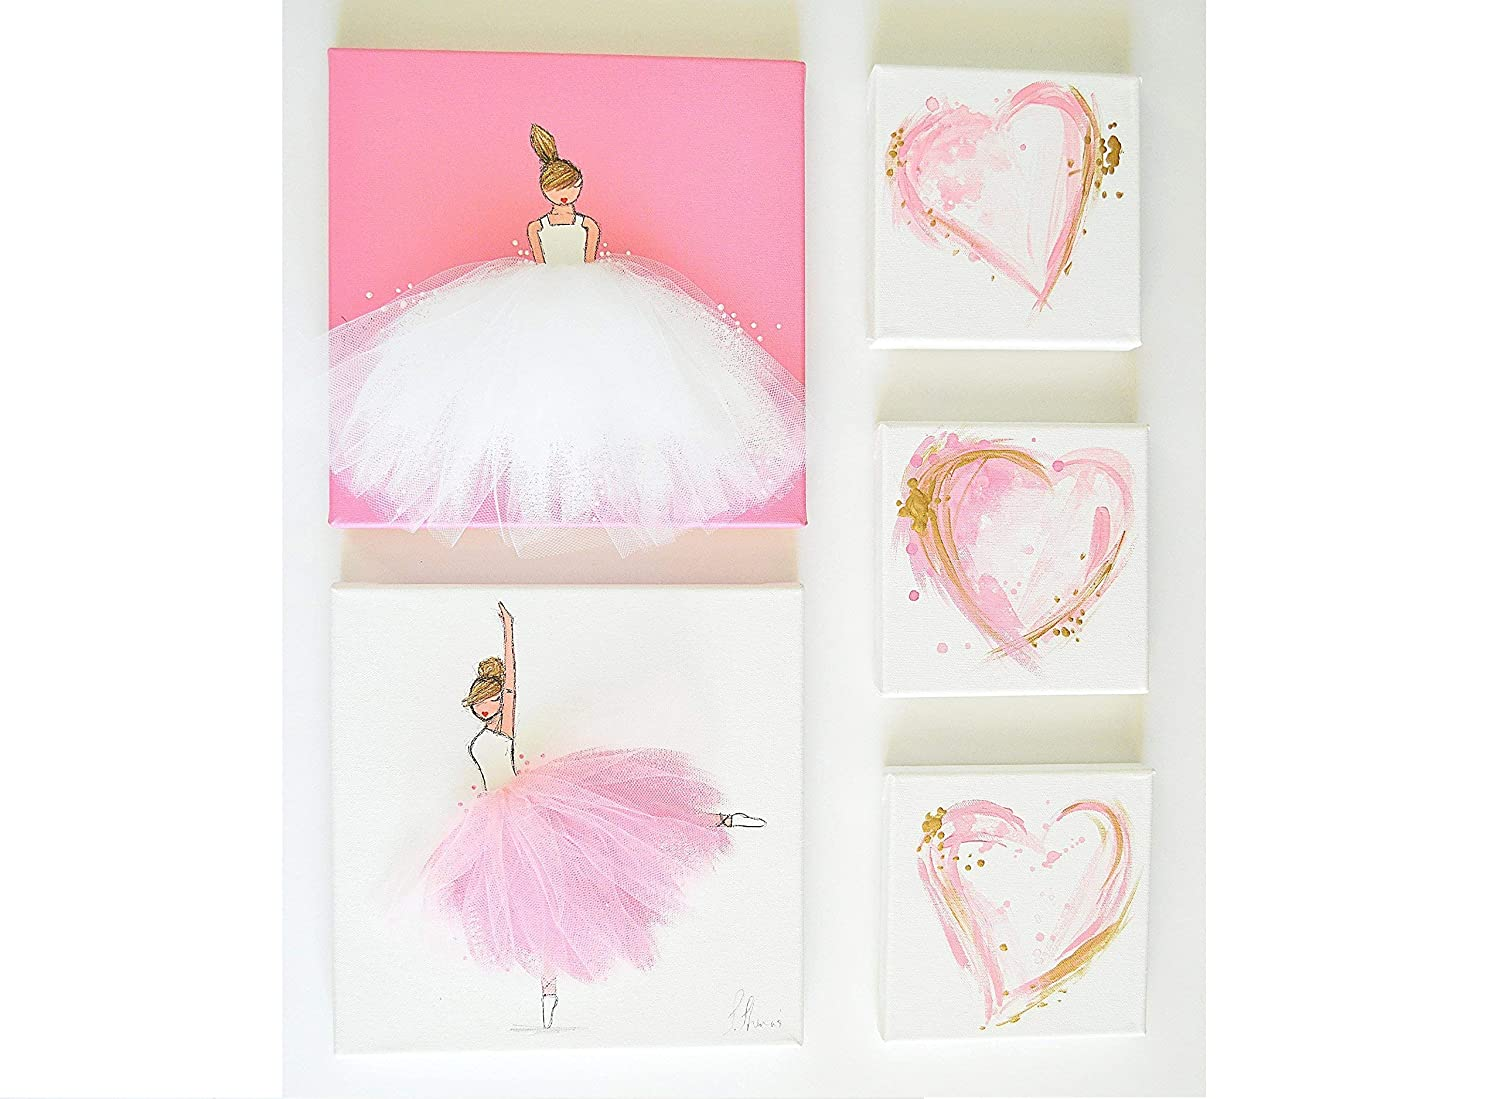 Baby Girl Bedroom Decor Set, Pink Wall Art for Nursery, Girl\'s Room Pink  Decor, Ballerina Original Art